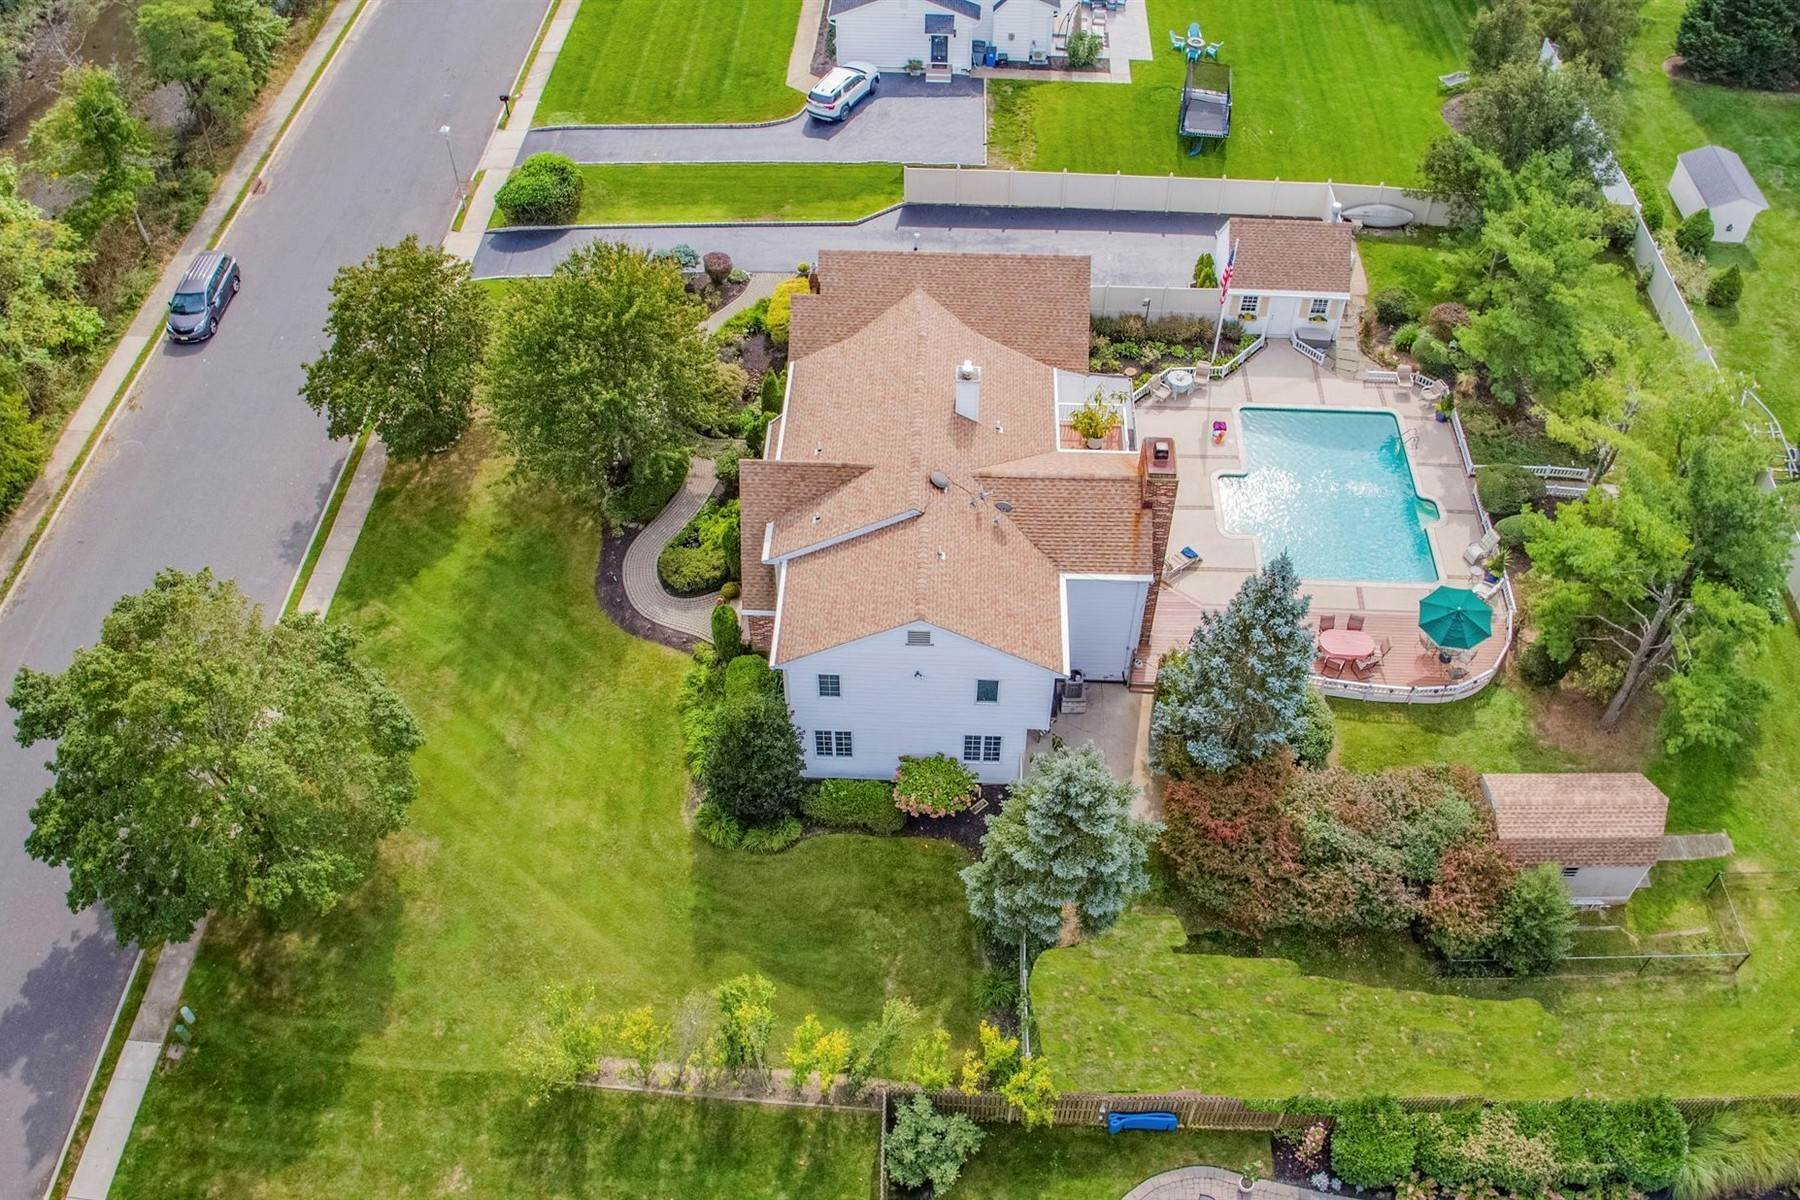 47. Single Family Homes for Sale at Elegance Meets Edgy Infused with Exceptional Quality and Custom Updates 130 Lippincott Road Little Silver, New Jersey 07739 United States